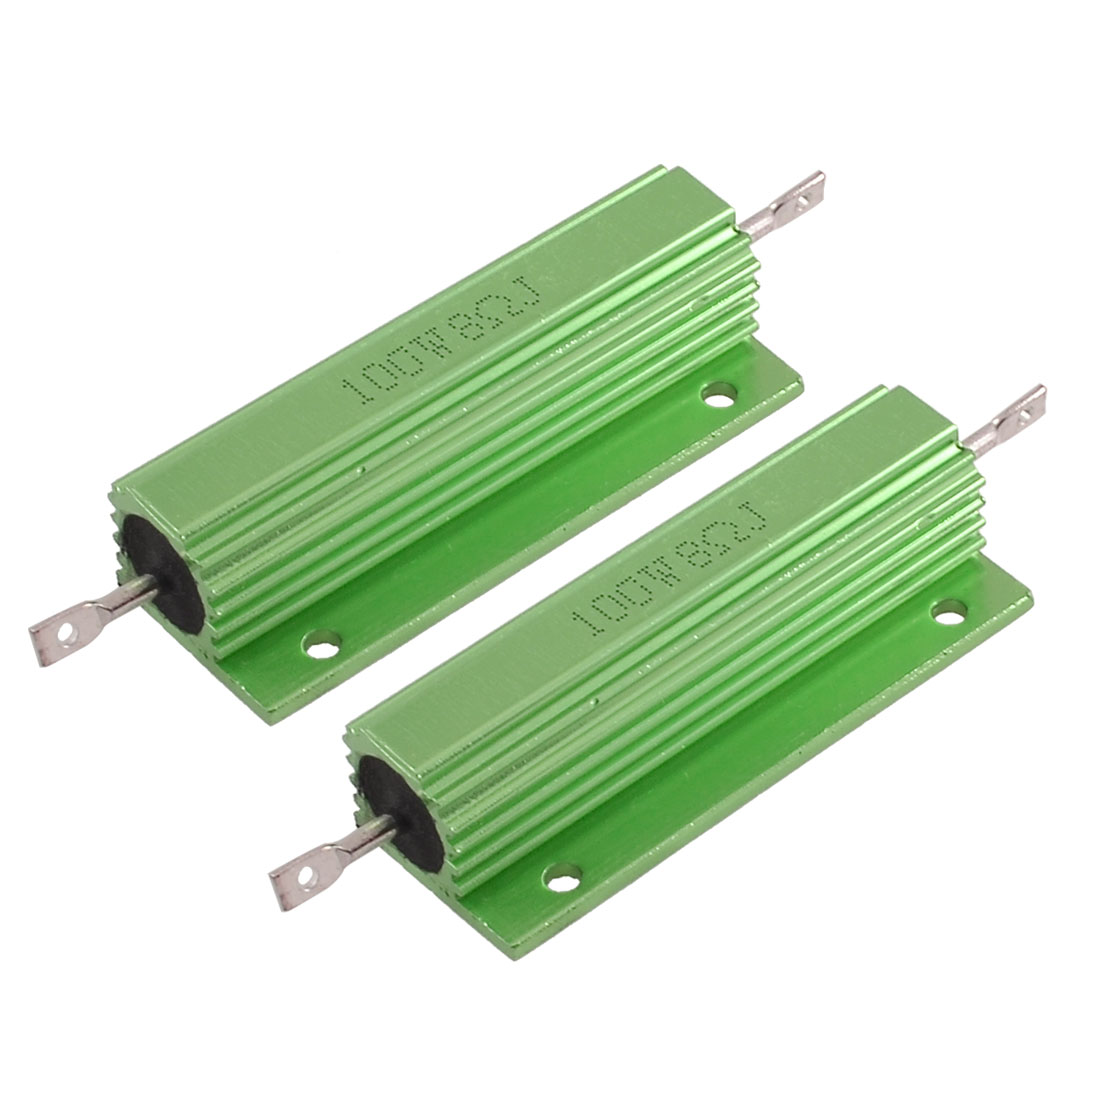 2 Pcs Green Aluminum Wire Wound Resistor 100W Powr 8 Ohm 5%